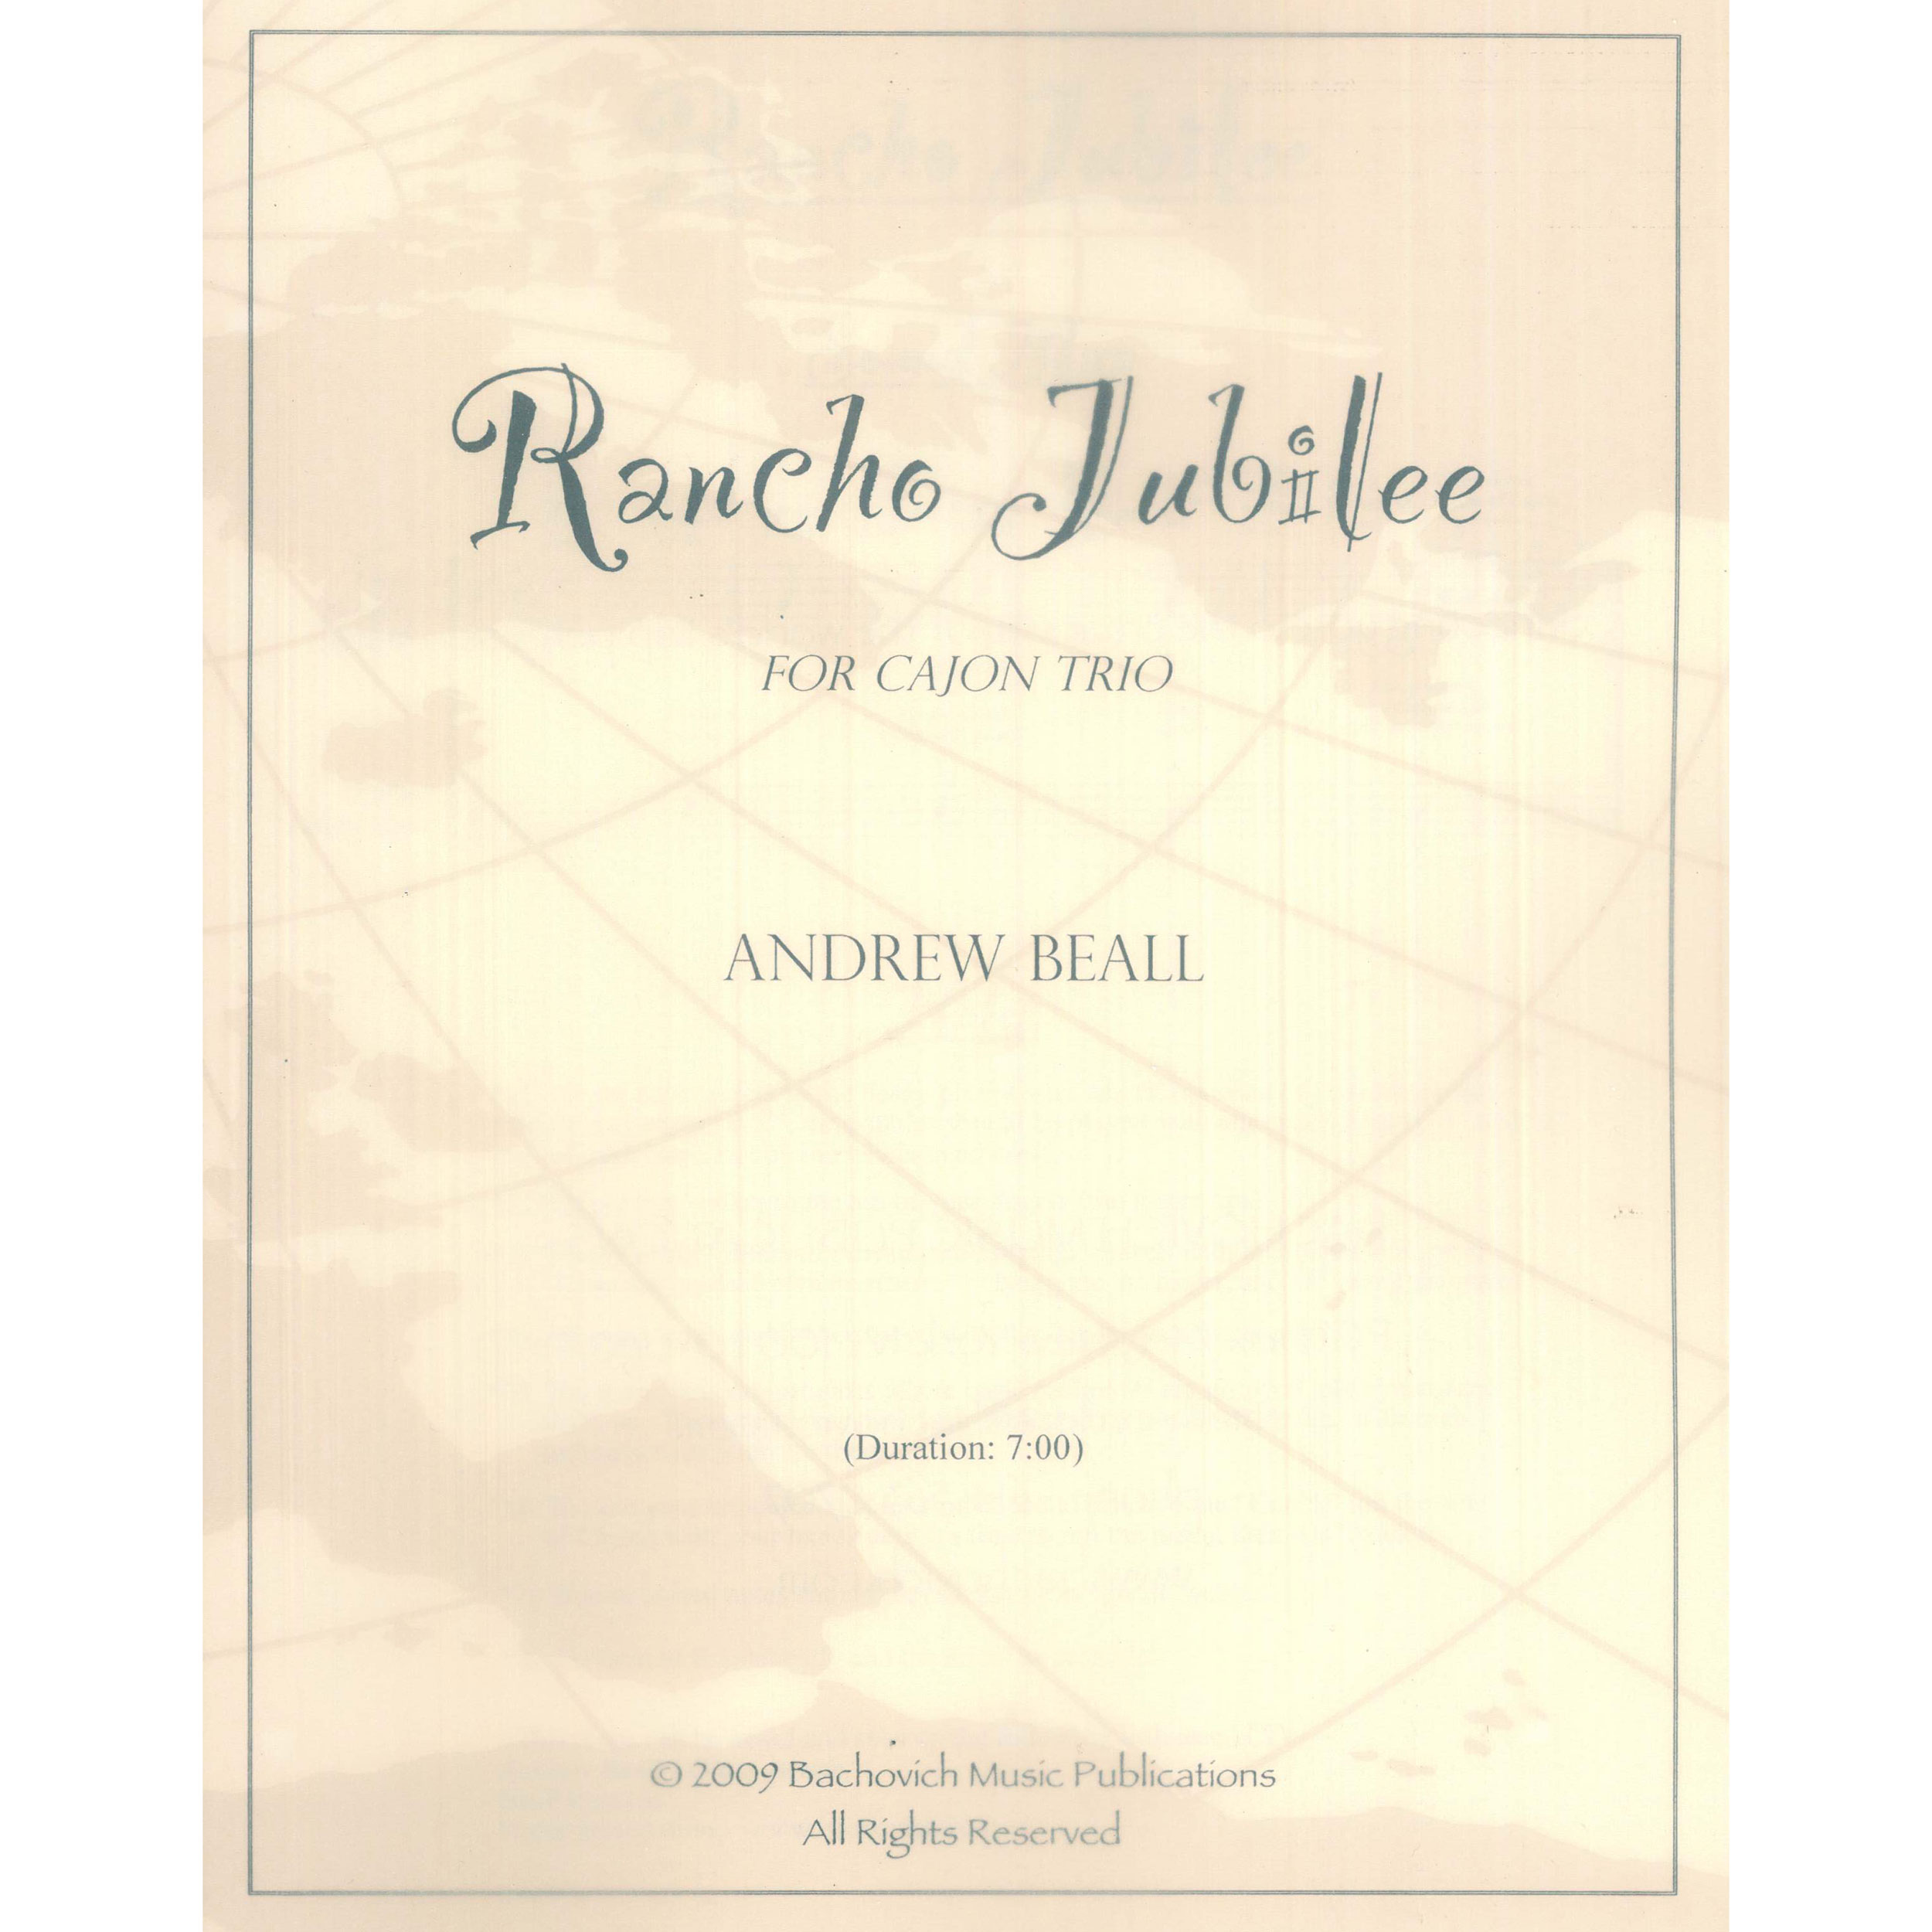 Rancho Jubilee by Andrew Beall